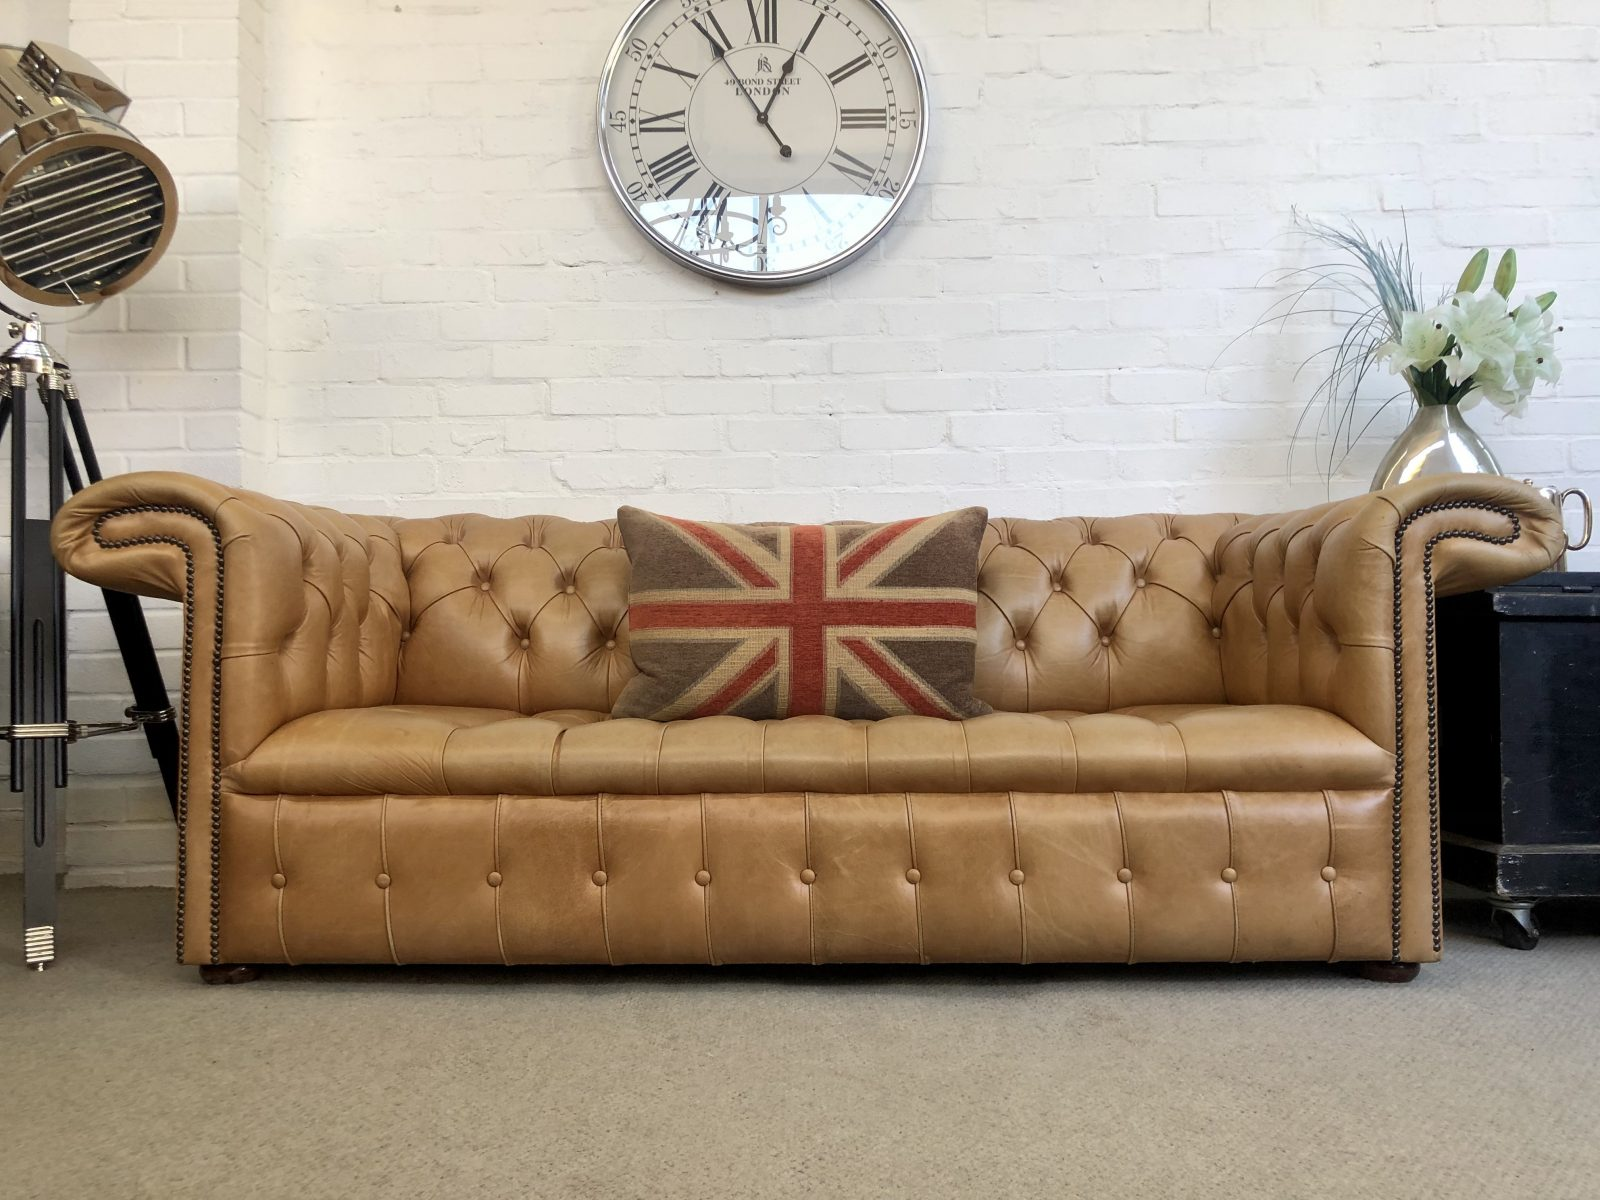 Classic Tan Chesterfield Sofa.( One Of A Matching Pair.)